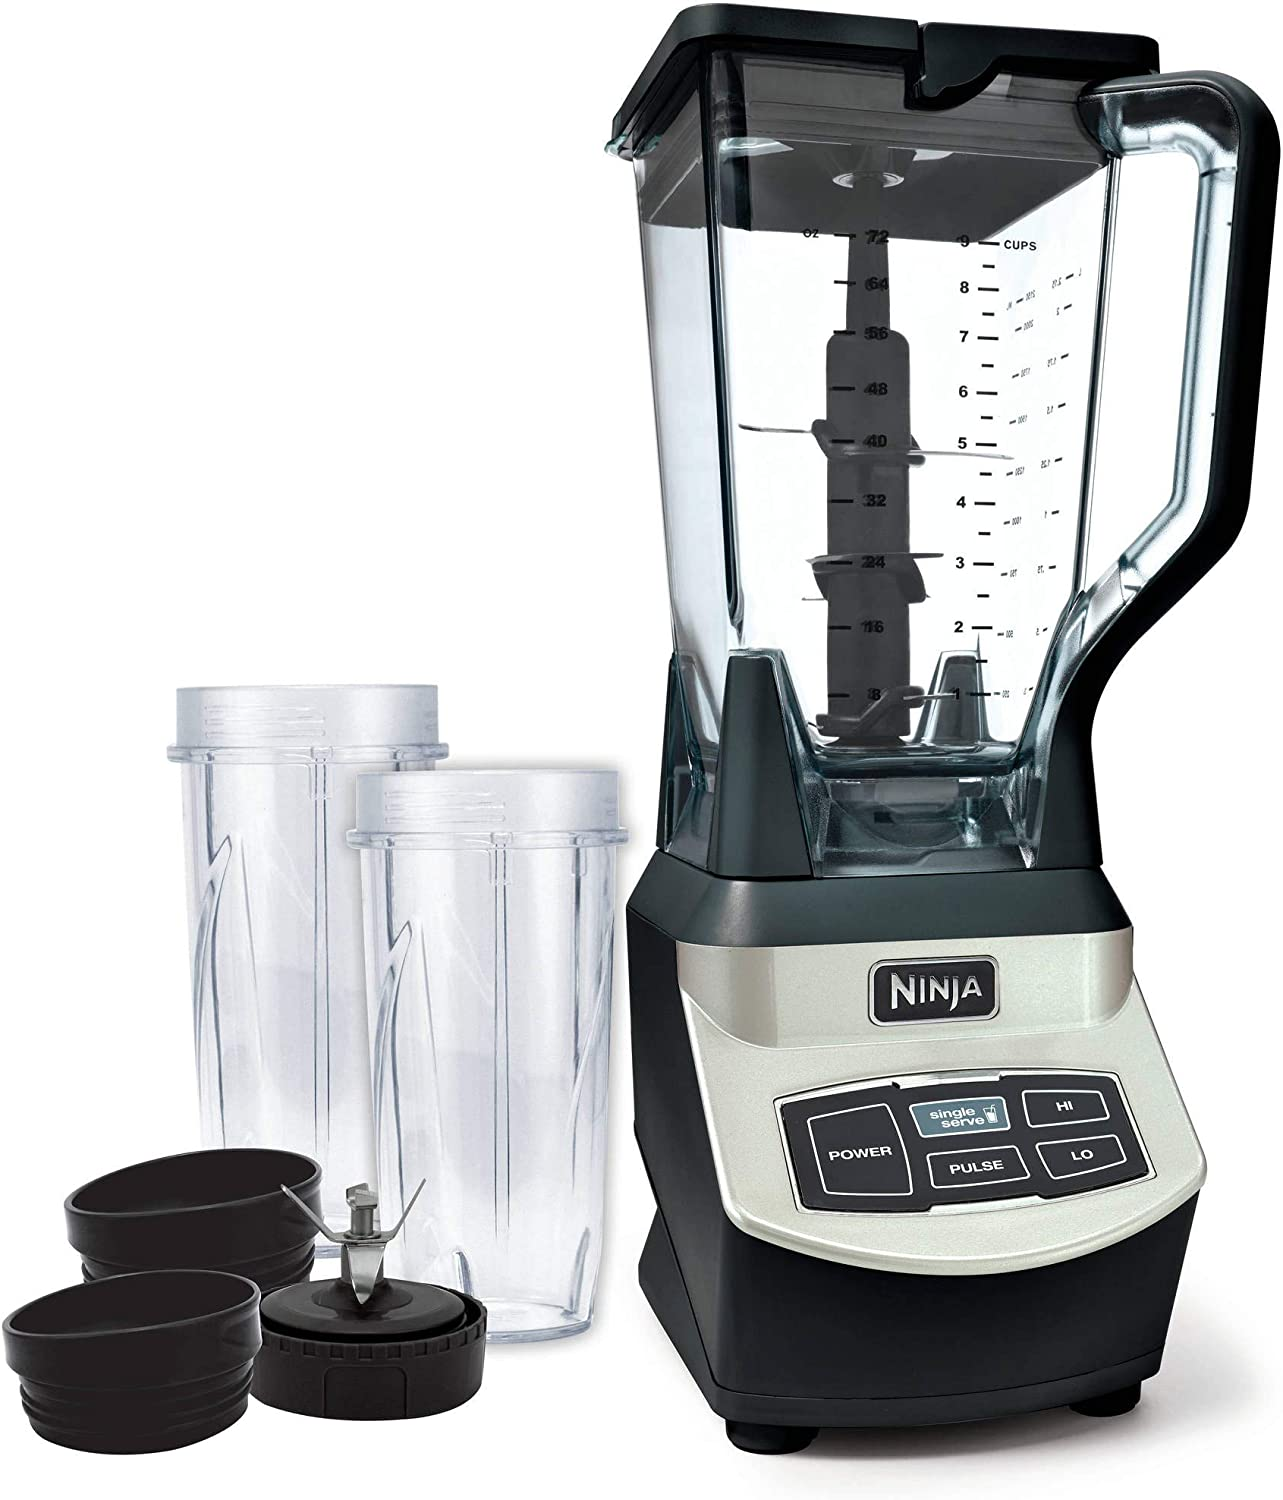 Ninja Professional Blender with Single Serve Cups Powerful 1000 Watts Motor Base XL 72oz Capacity Pitcher BL660WM (Renewed)